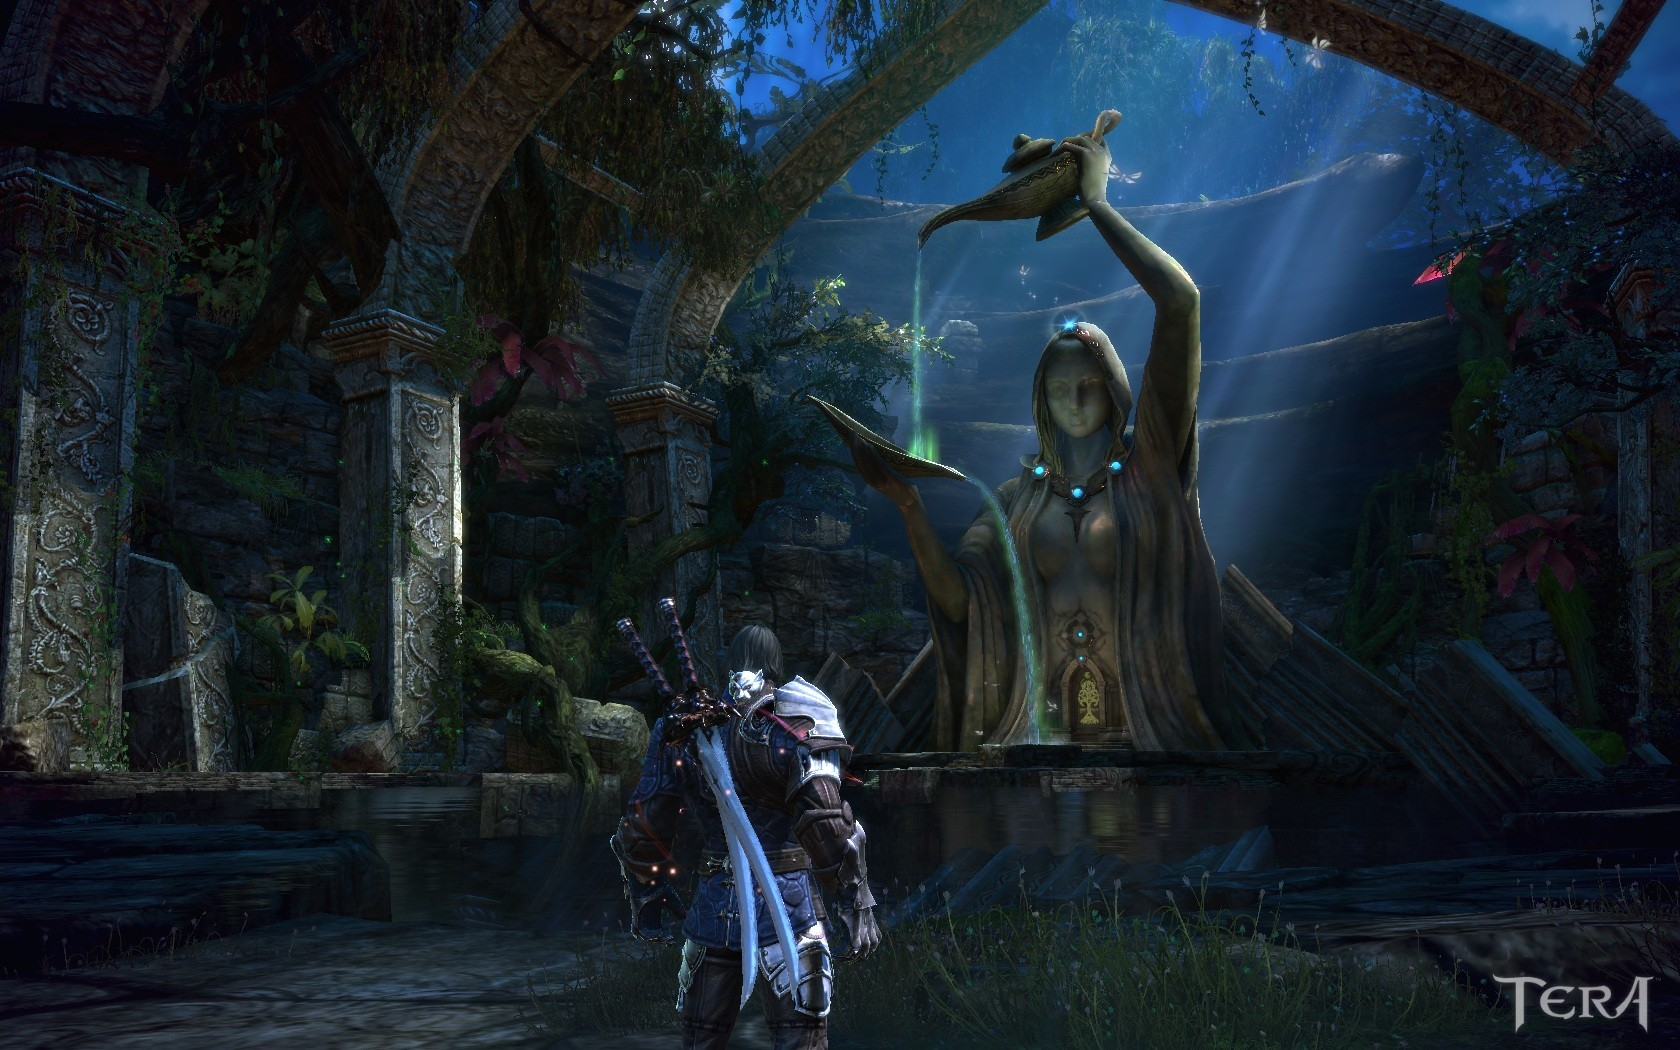 TERA: Rising - Tera - The Fountain of Shara